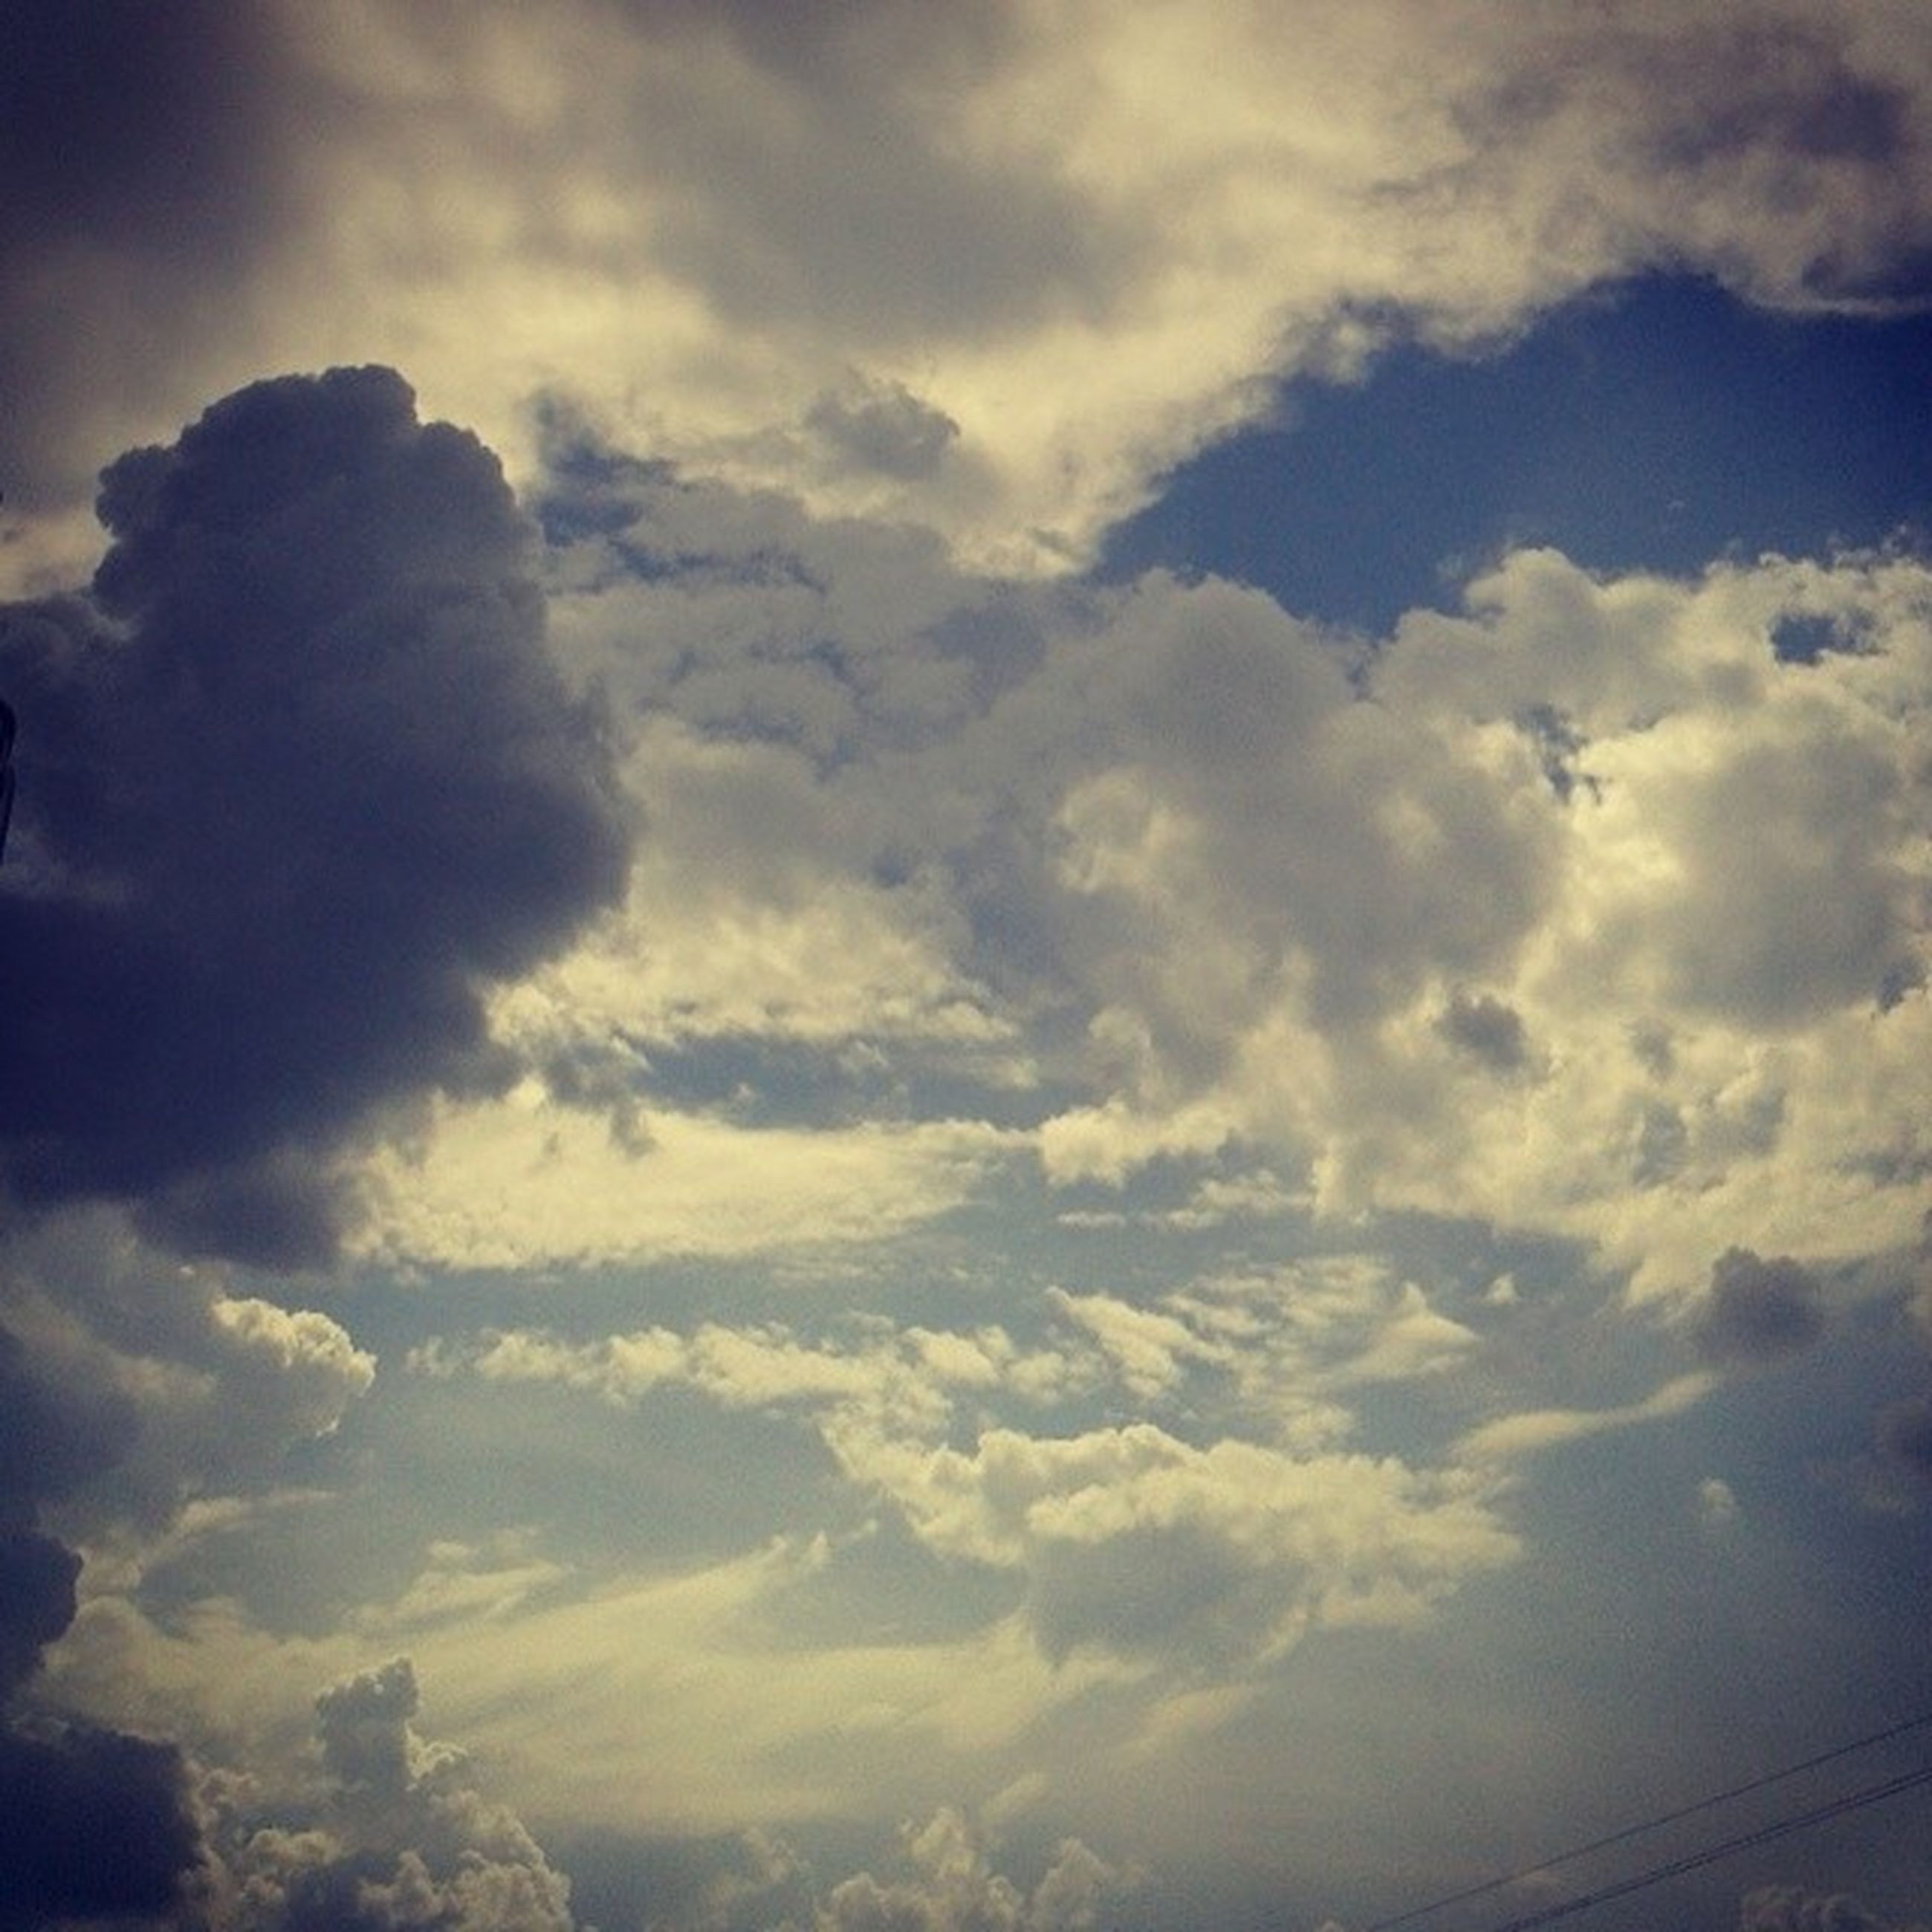 sky, cloud - sky, beauty in nature, tranquility, cloudy, scenics, low angle view, tranquil scene, nature, cloudscape, cloud, weather, idyllic, sky only, outdoors, silhouette, no people, overcast, majestic, blue